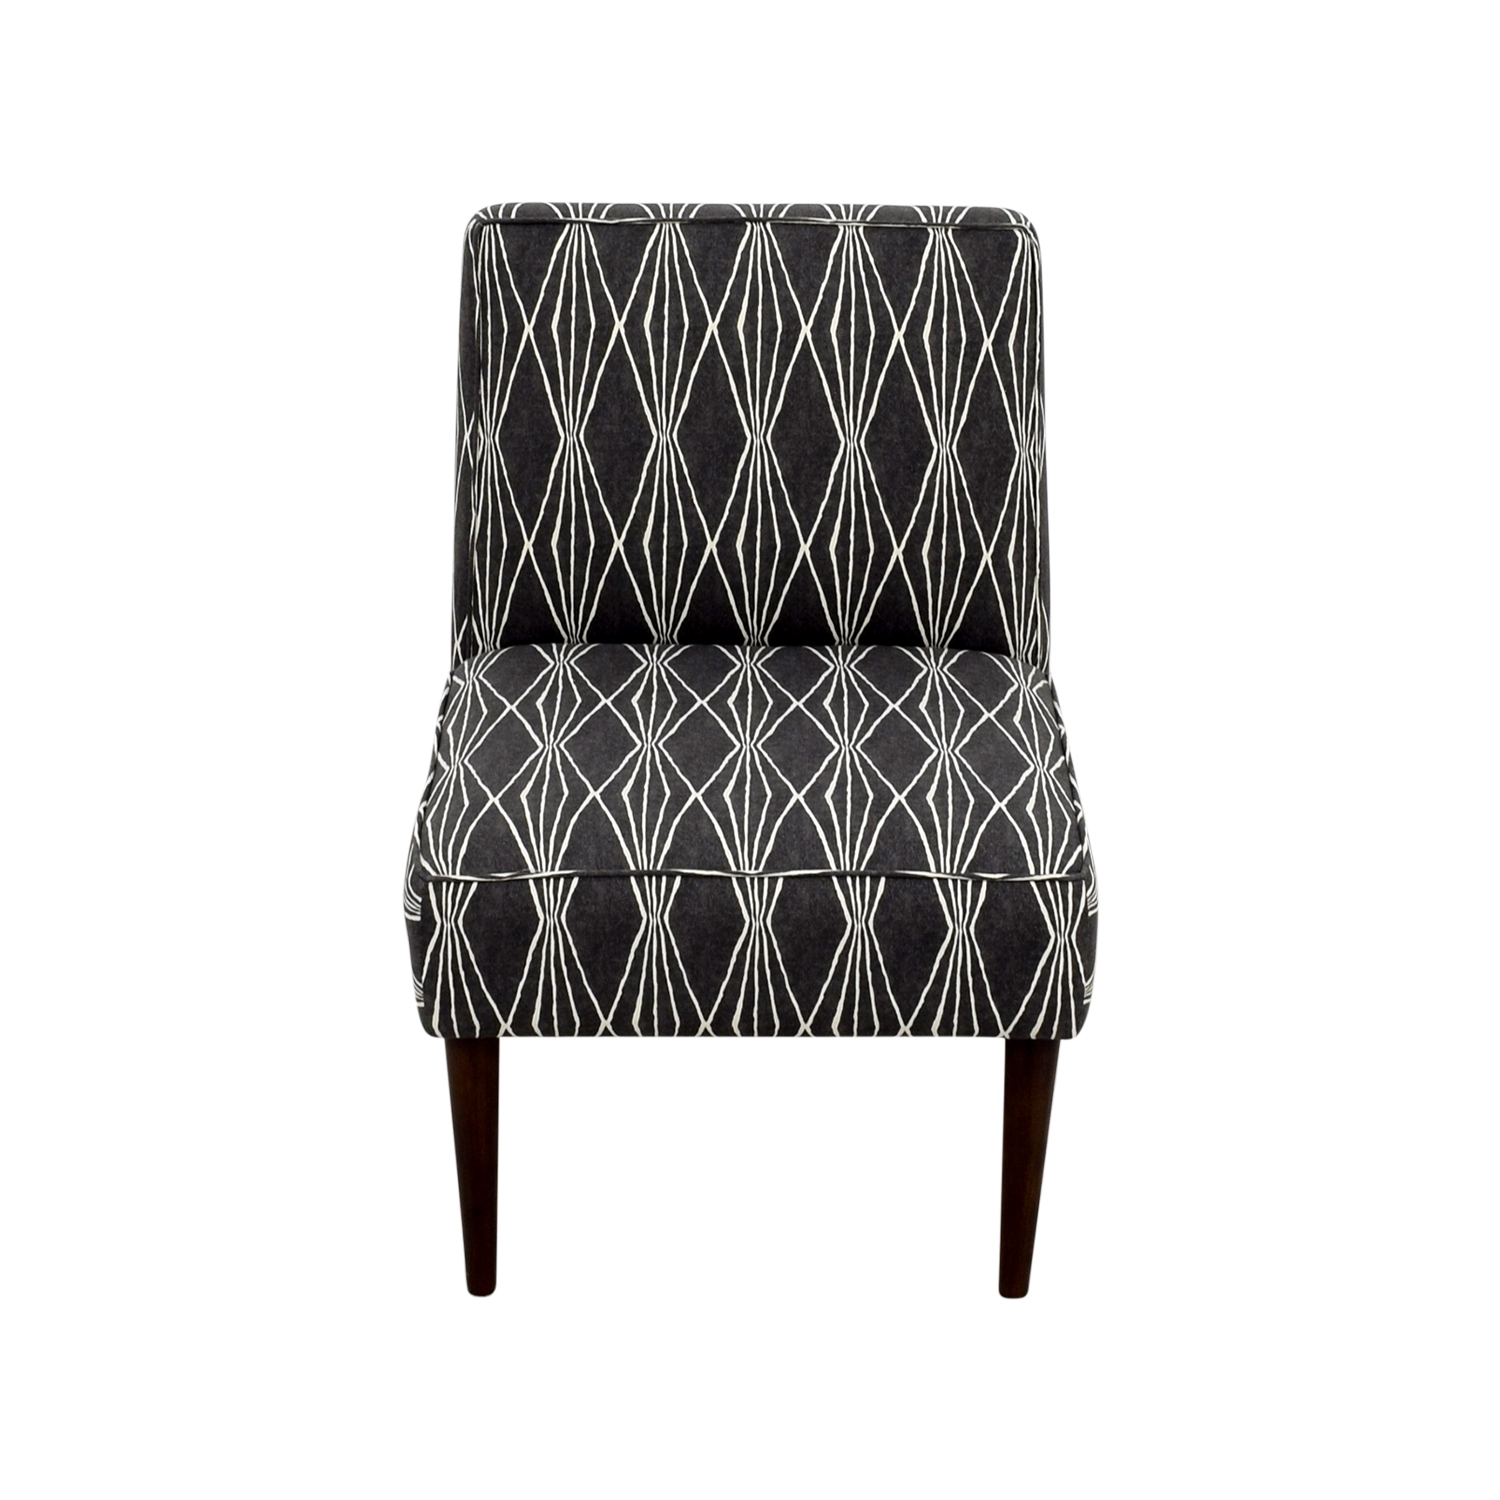 Macys Macys Palmdale Handcut Shapes Fabric Accent Chair nj